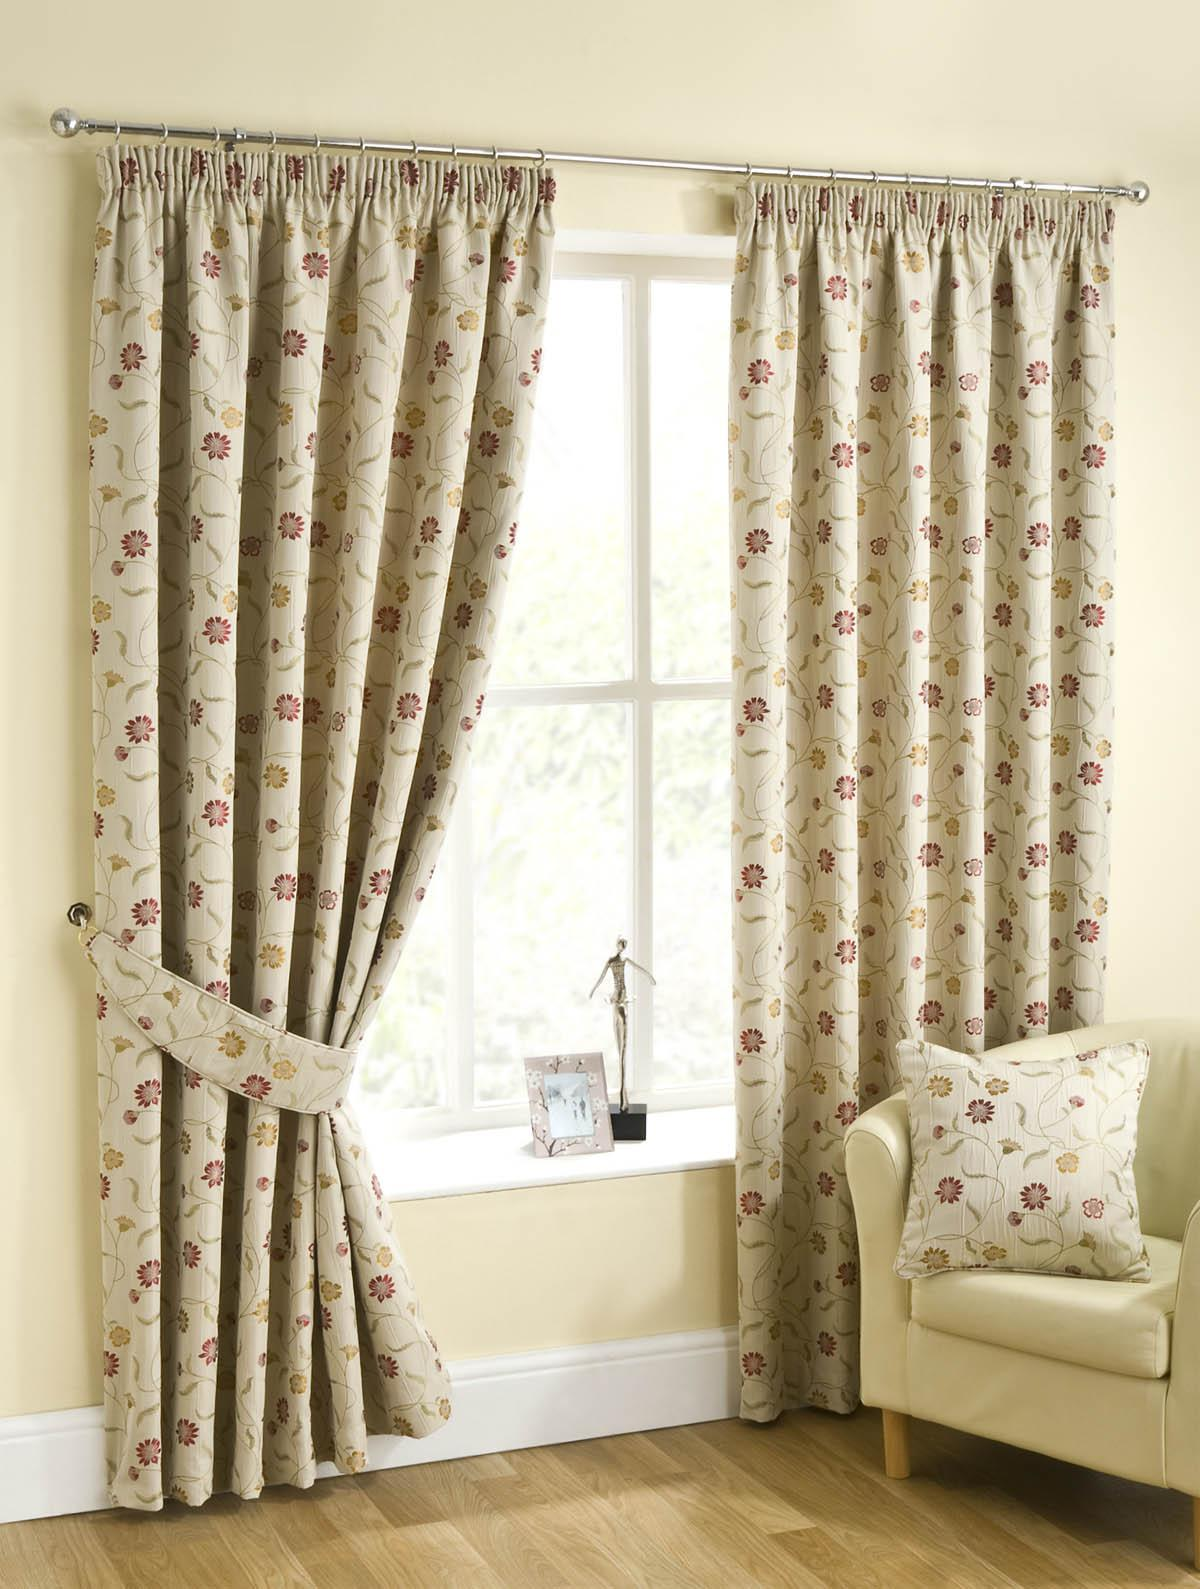 Lined Bedroom Curtains Yellow Bedroom Curtains Rrp Discounts On Curtains Terrys Fabrics